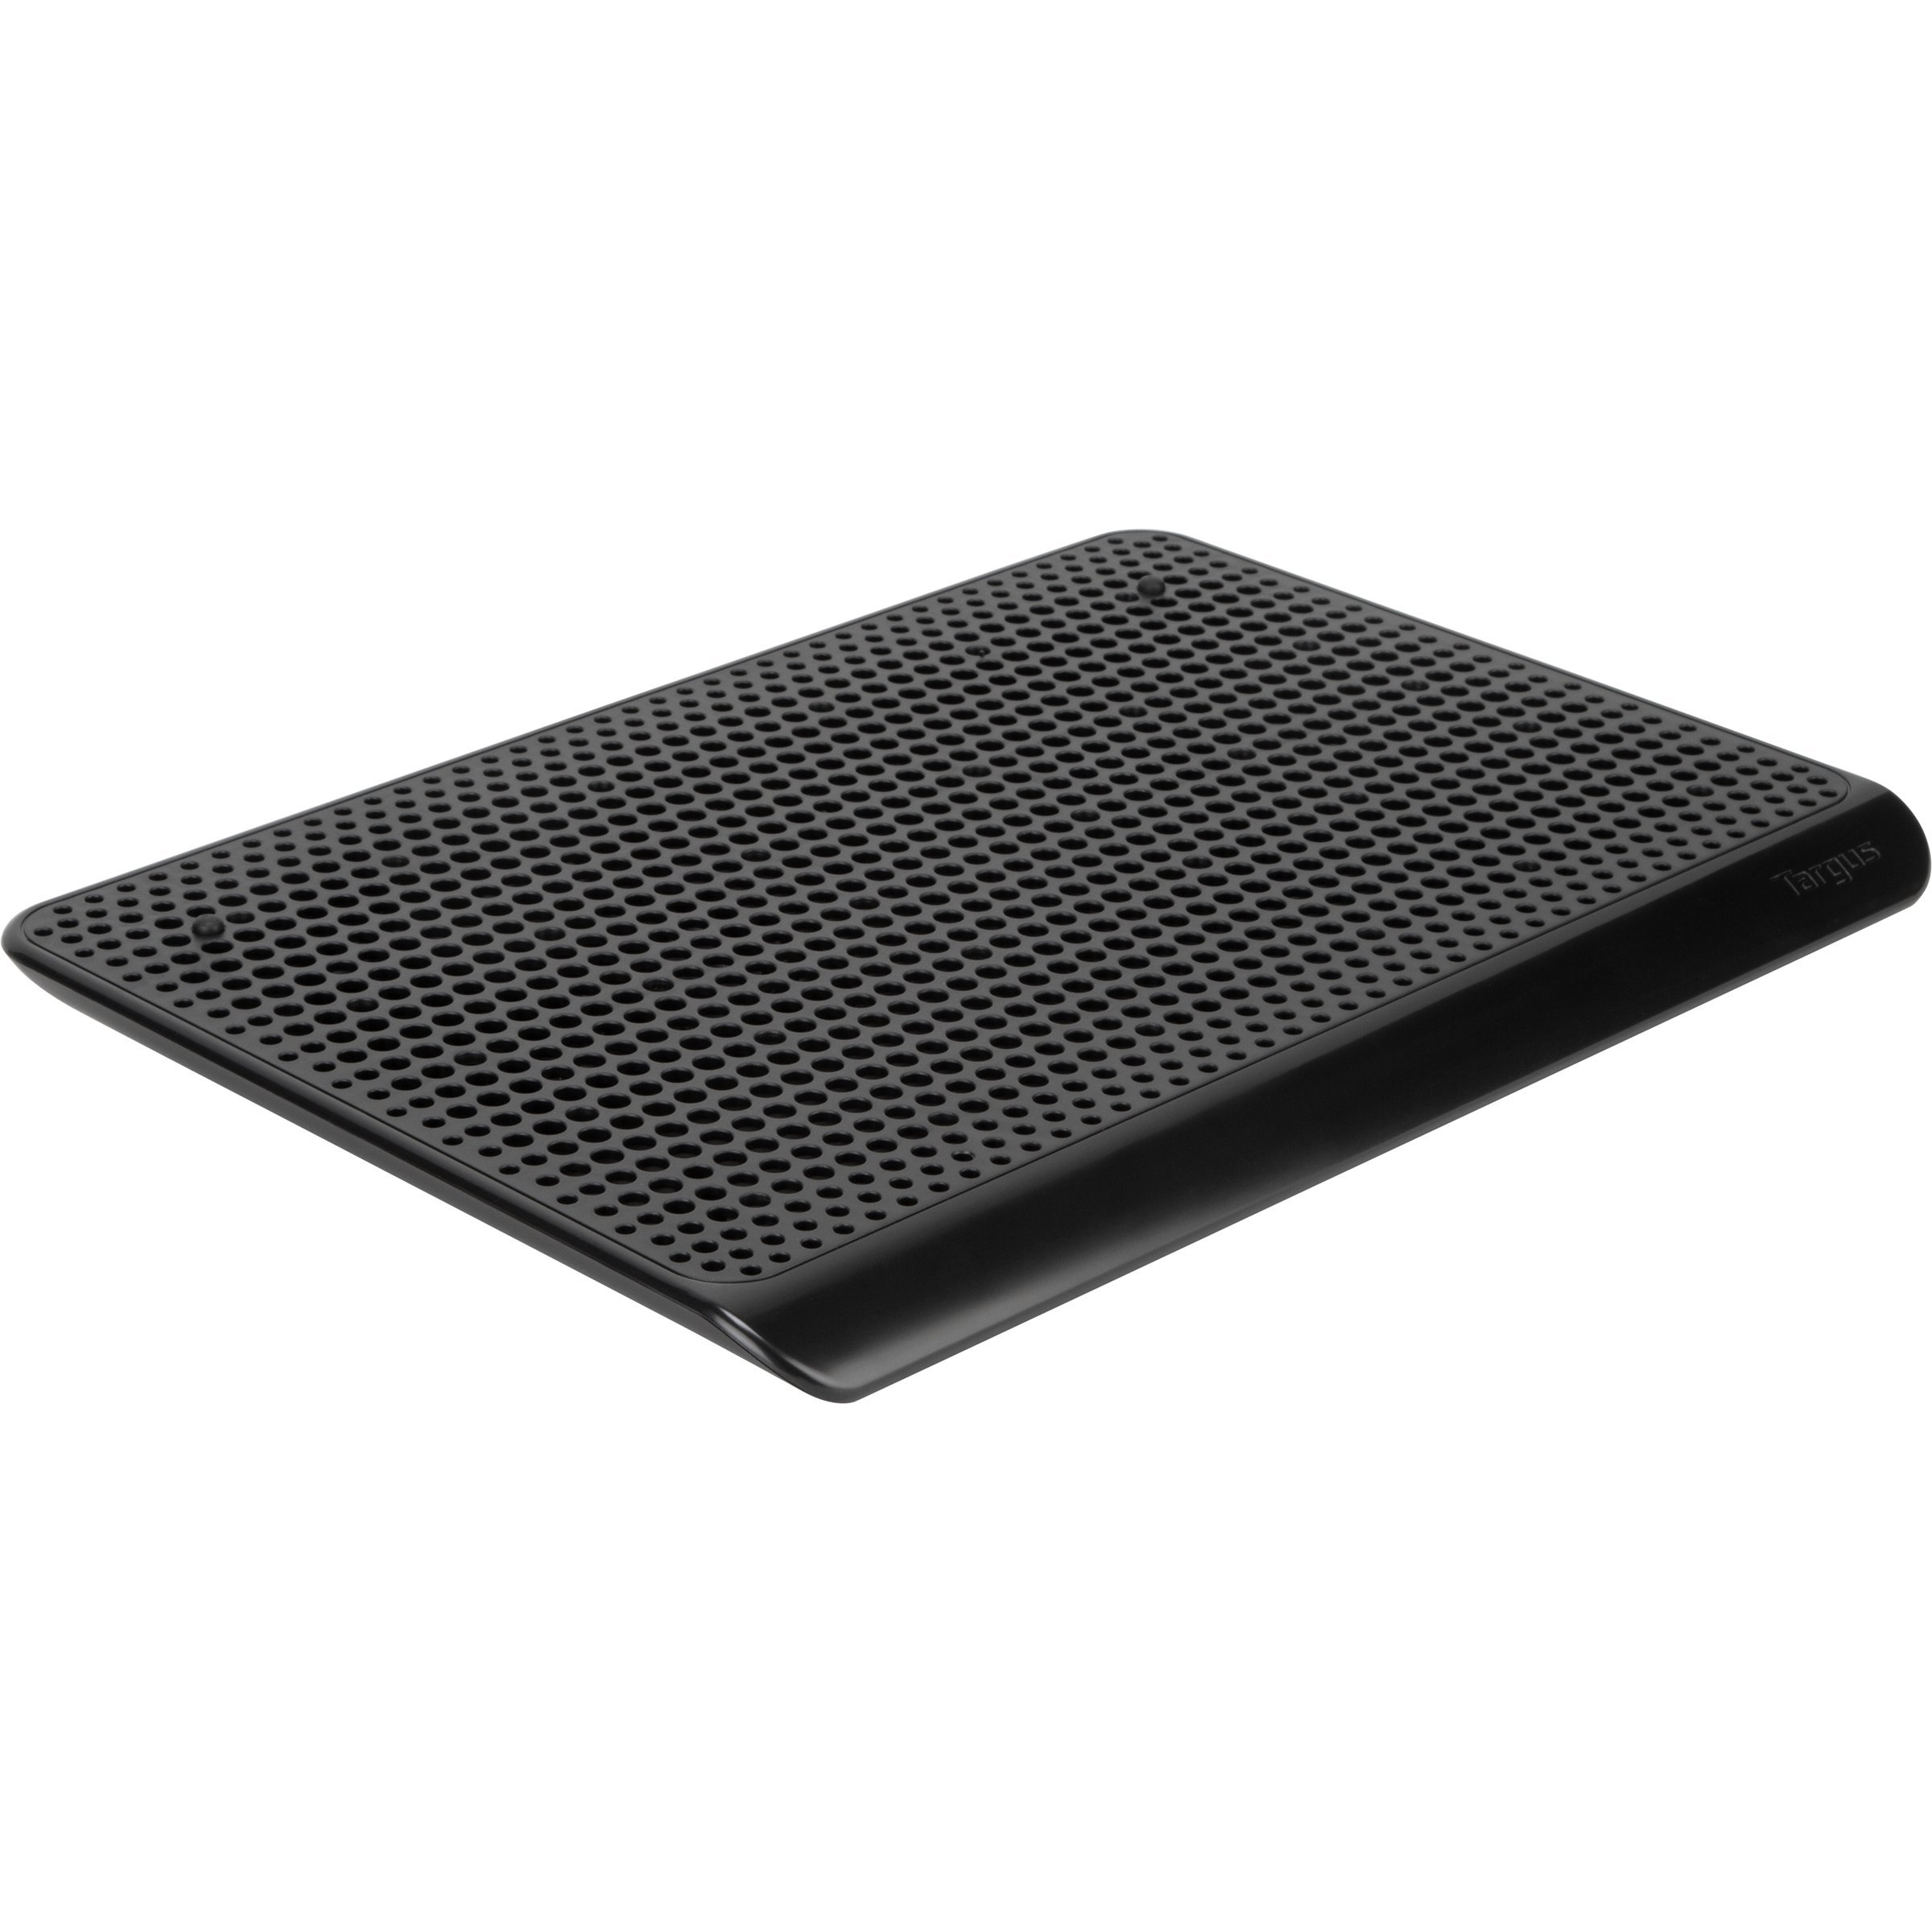 Targus Certified Pre-Owned Dual Fan Chill Mat for Laptop up to 16 Inches, 13.5 x 9.25 x 1 Inches, Black (AWE61US, Refurbished)